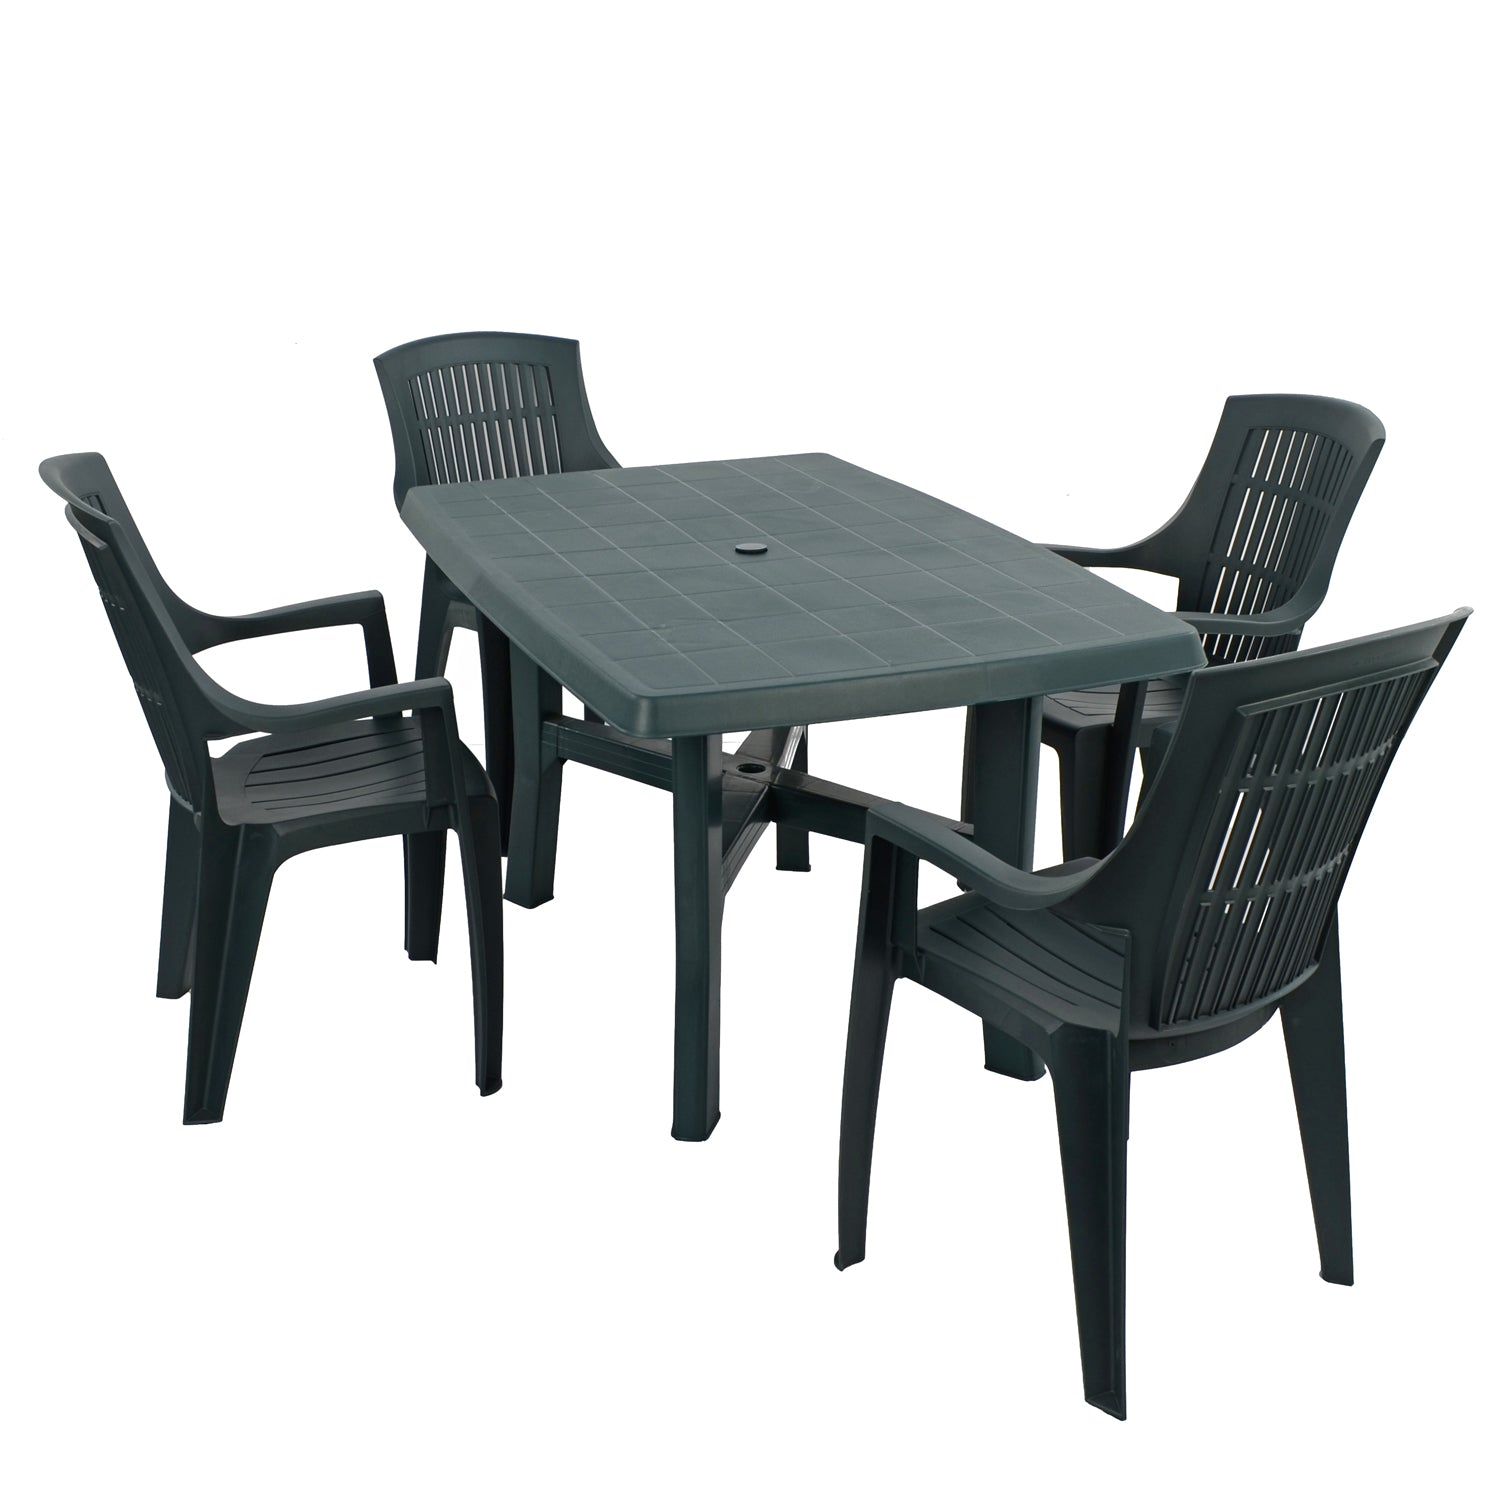 Trabella Taranto Table with 4 Parma Chairs Garden Set in Green - Ruby's Garden Boutique